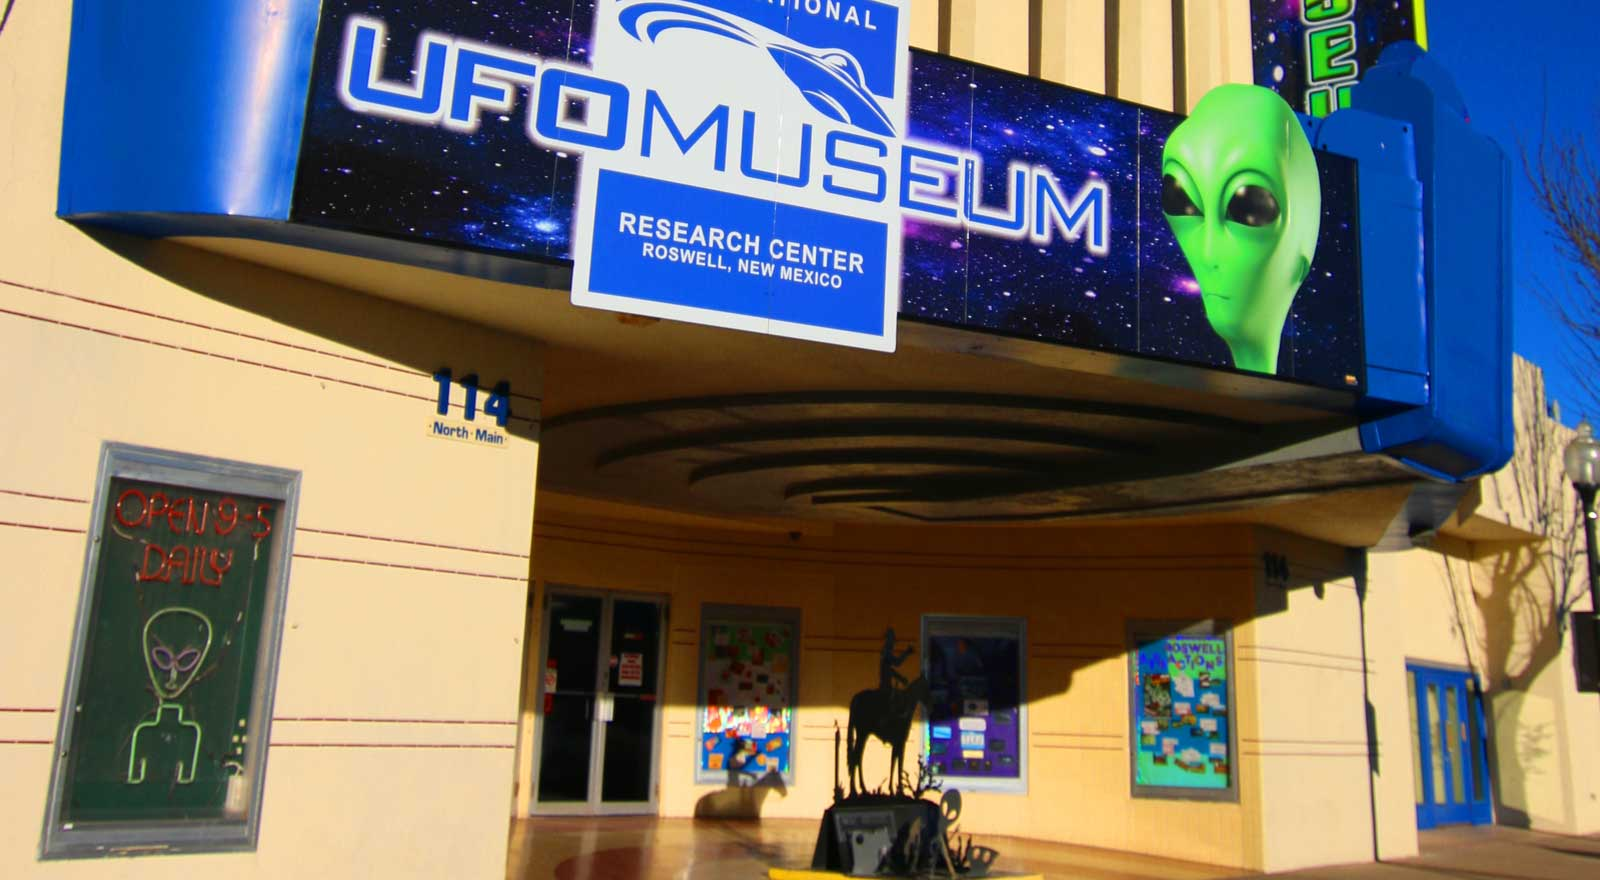 UFO Museum attracts 225,000 unique visitors annually